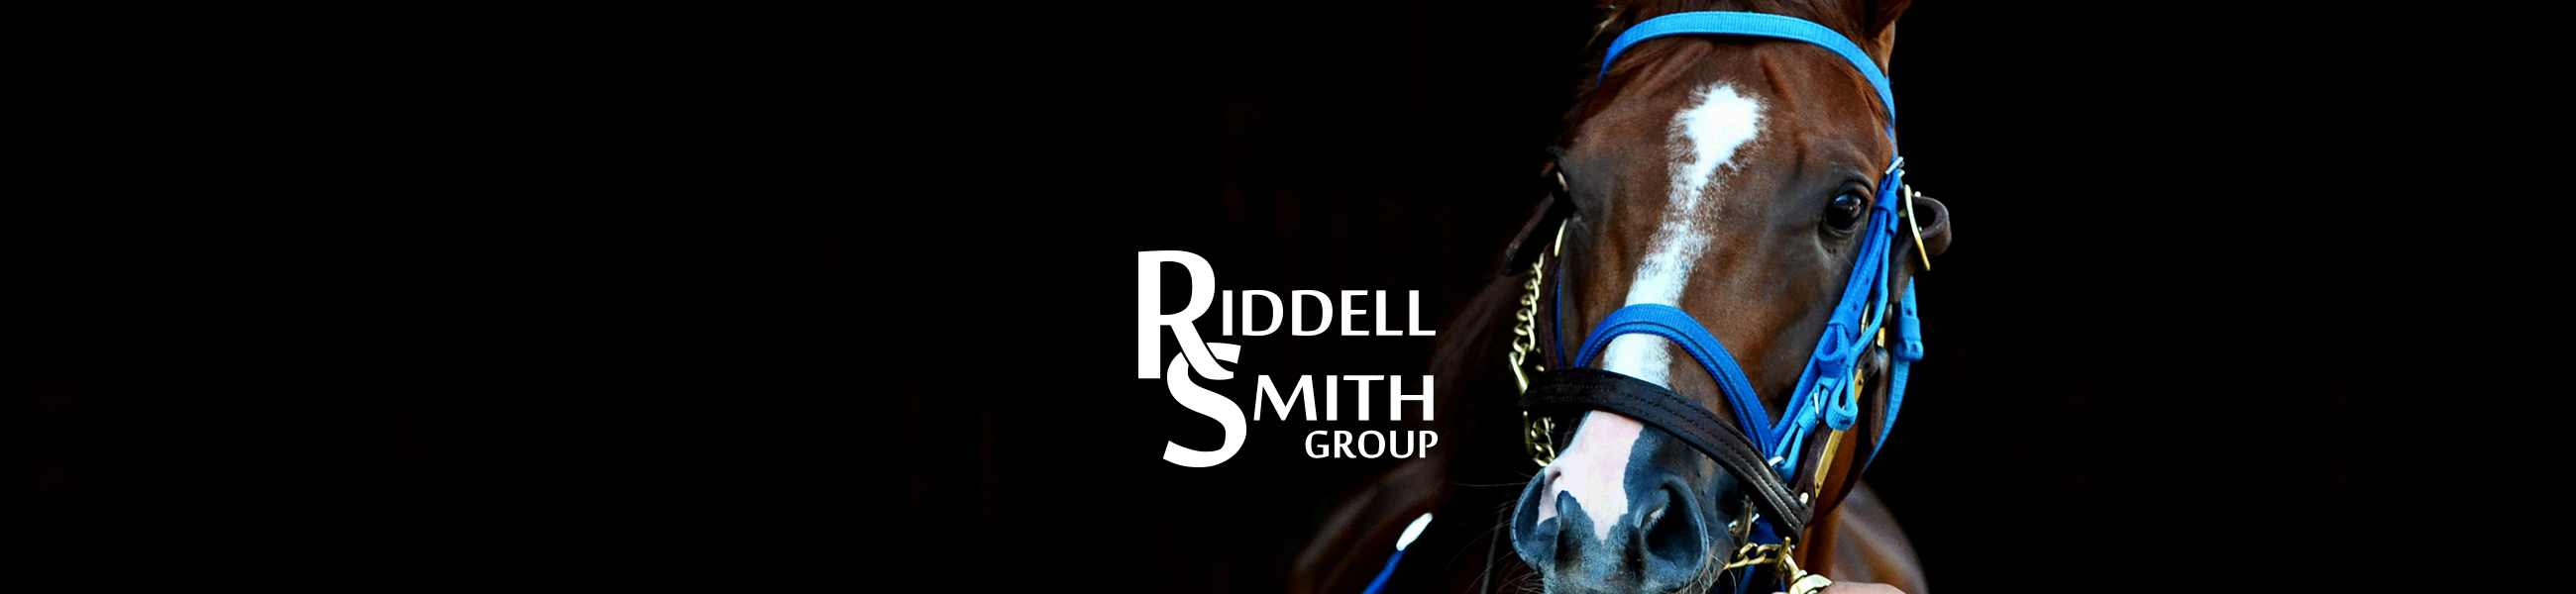 Horse Farms in Kentucky - Raising Racehorses - Riddell Smith Group